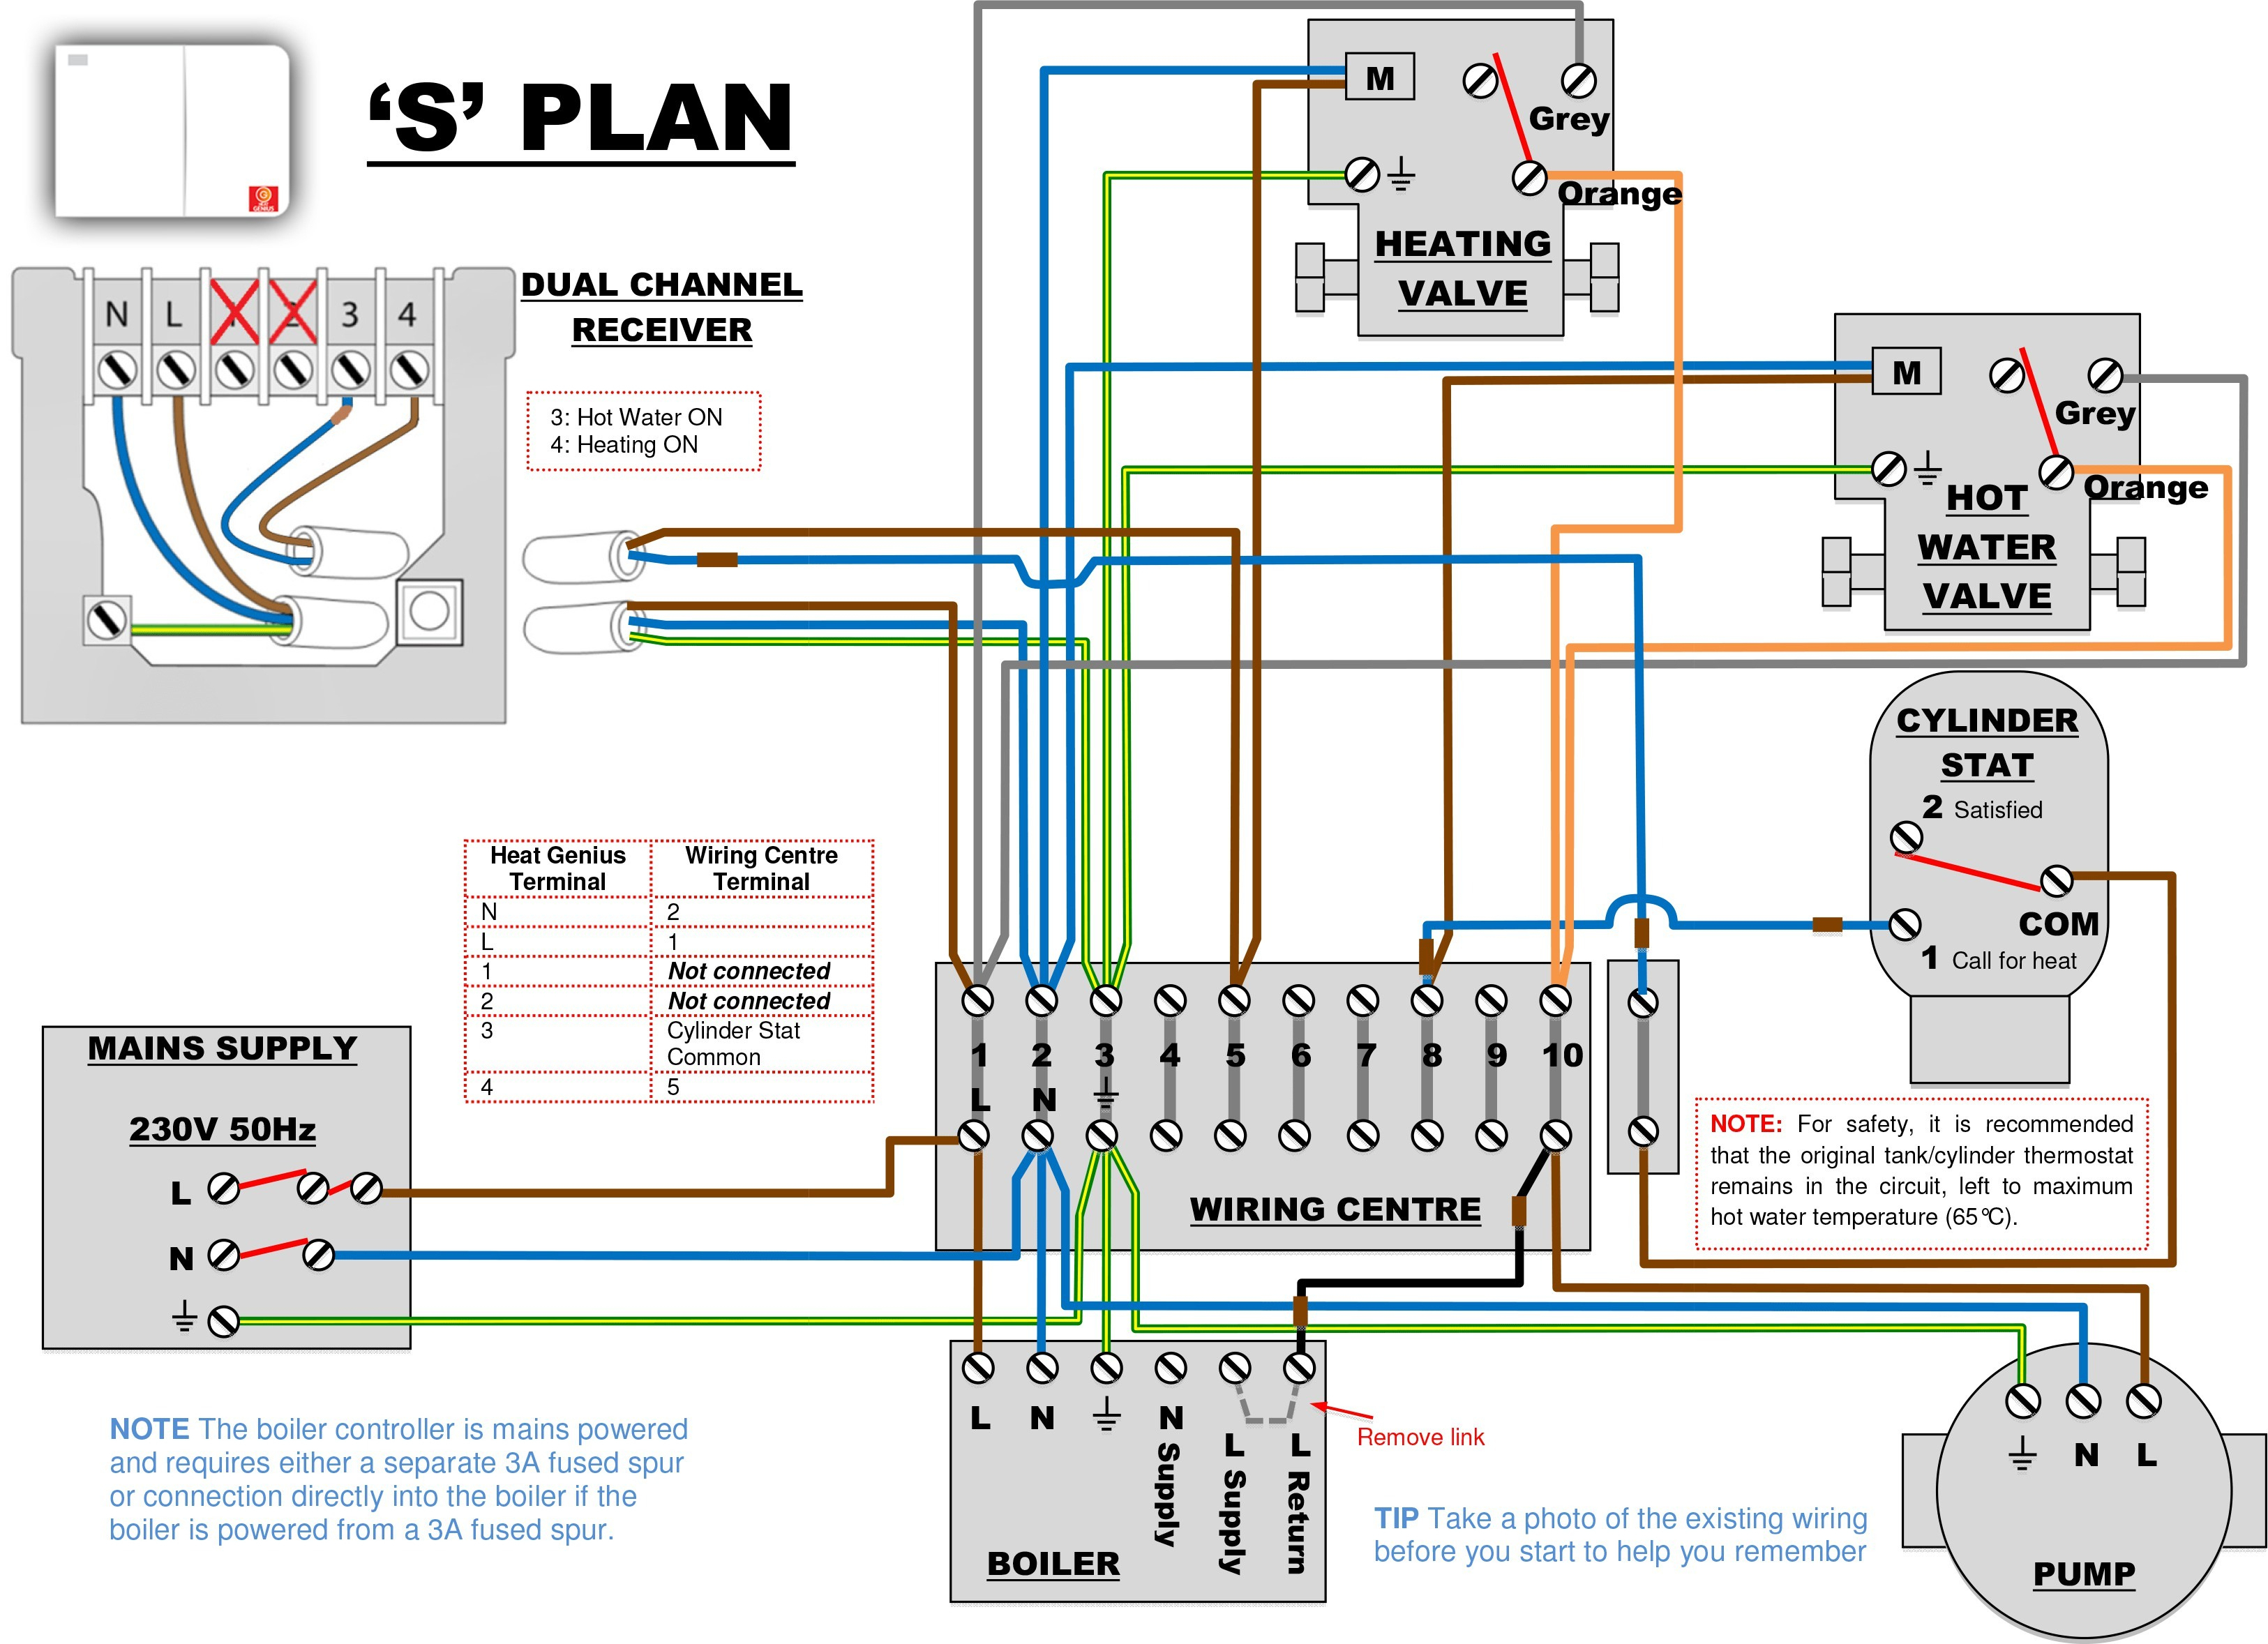 heat pump thermostat wiring diagram wiring solution 2018 nest eheat pump thermostat wiring diagram \u2013 wiring solution 2018 \u2013 nest e wiring schematic